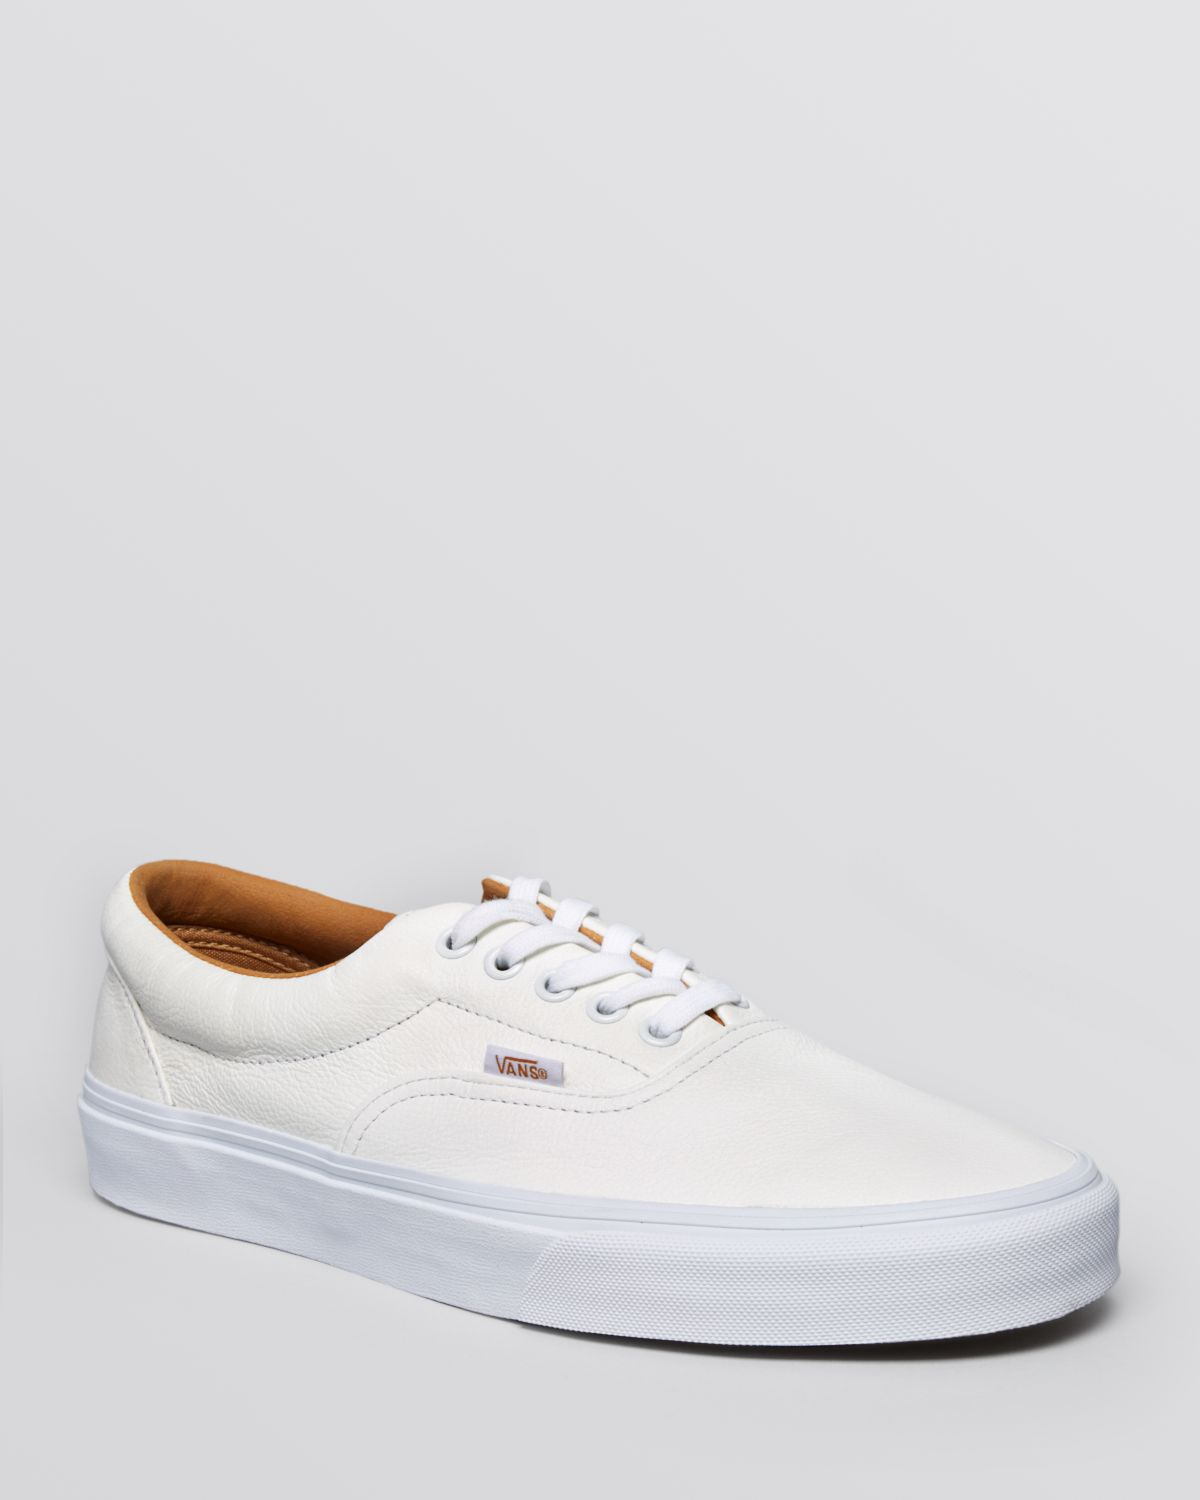 d96b5bf4b58a Lyst - Vans Era Premium Leather Lace-Up Sneakers in White for Men